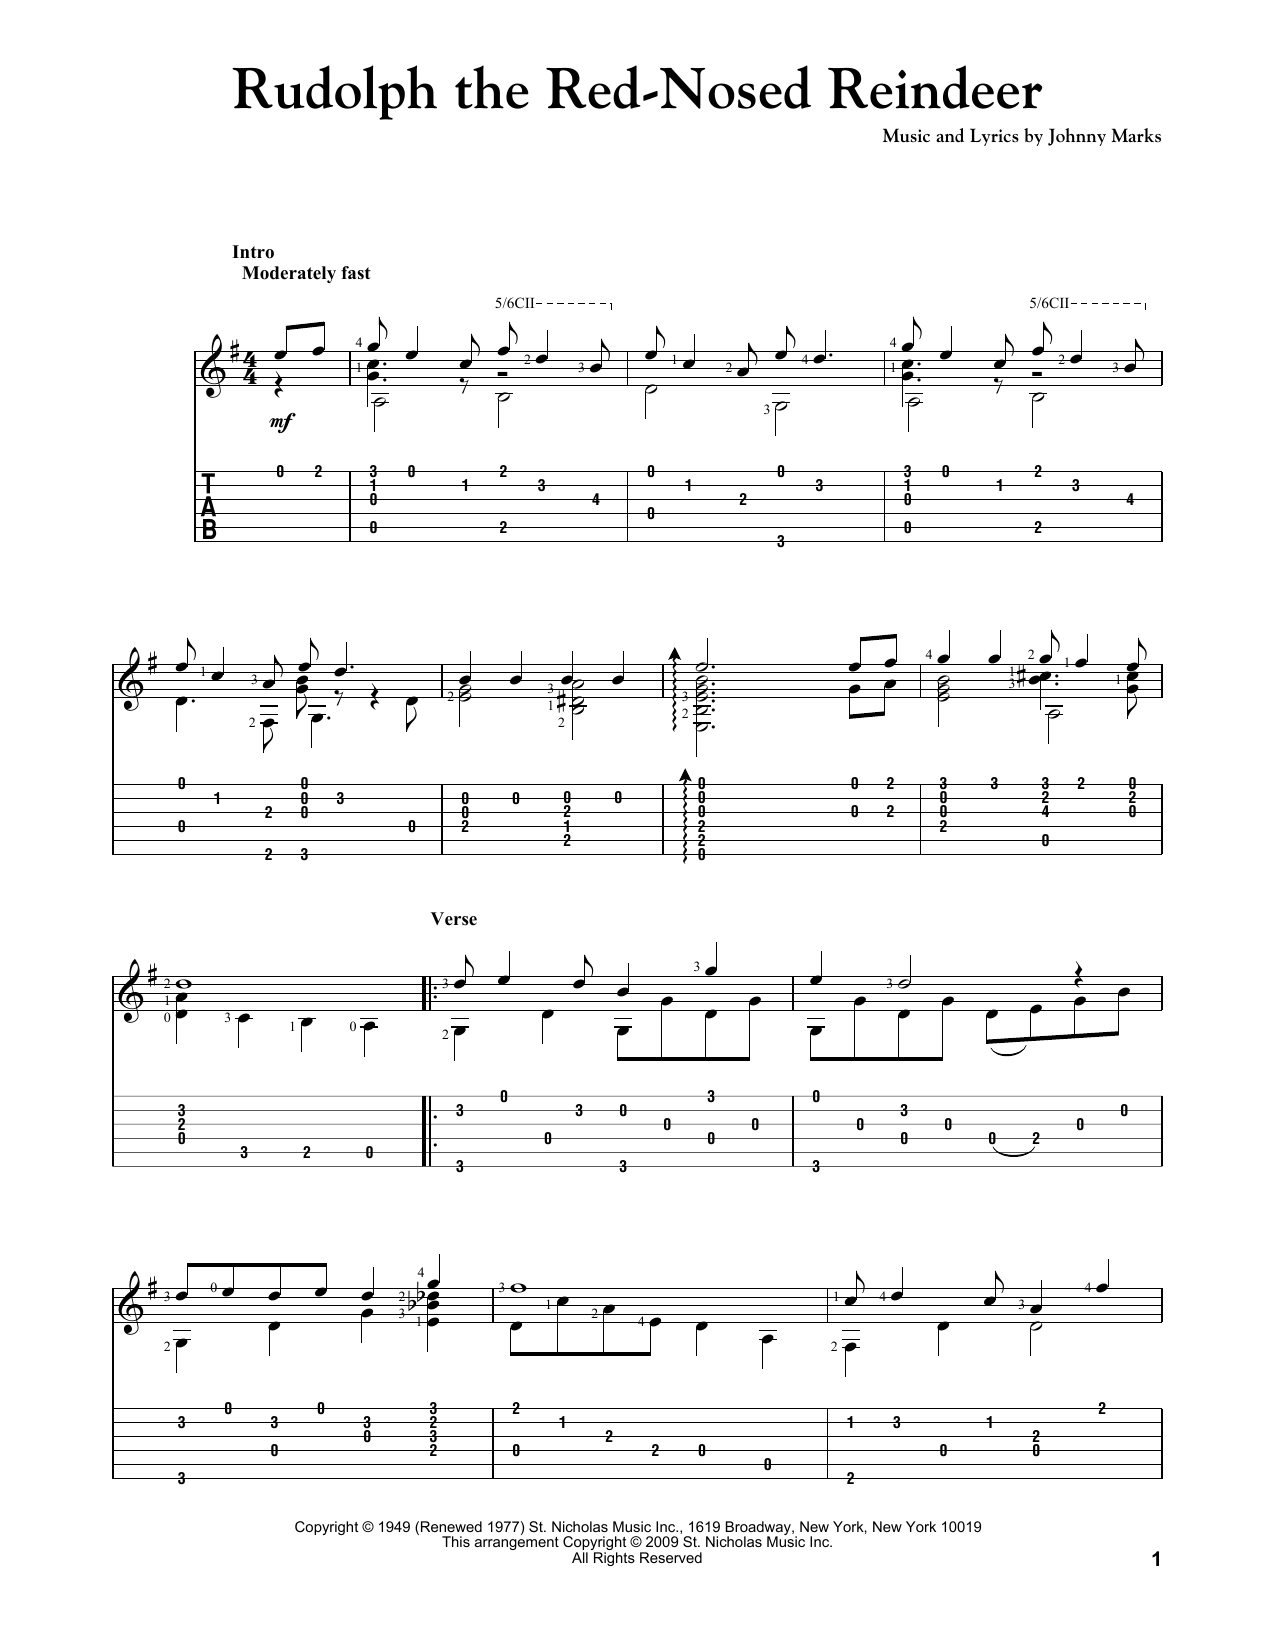 graphic about Rudolph the Red Nosed Reindeer Lyrics Printable titled Johnny Marks Rudolph The Pink-Nosed Reindeer Sheet Songs Notes, Chords  Down load Printable Guitar Tab - SKU: 83169